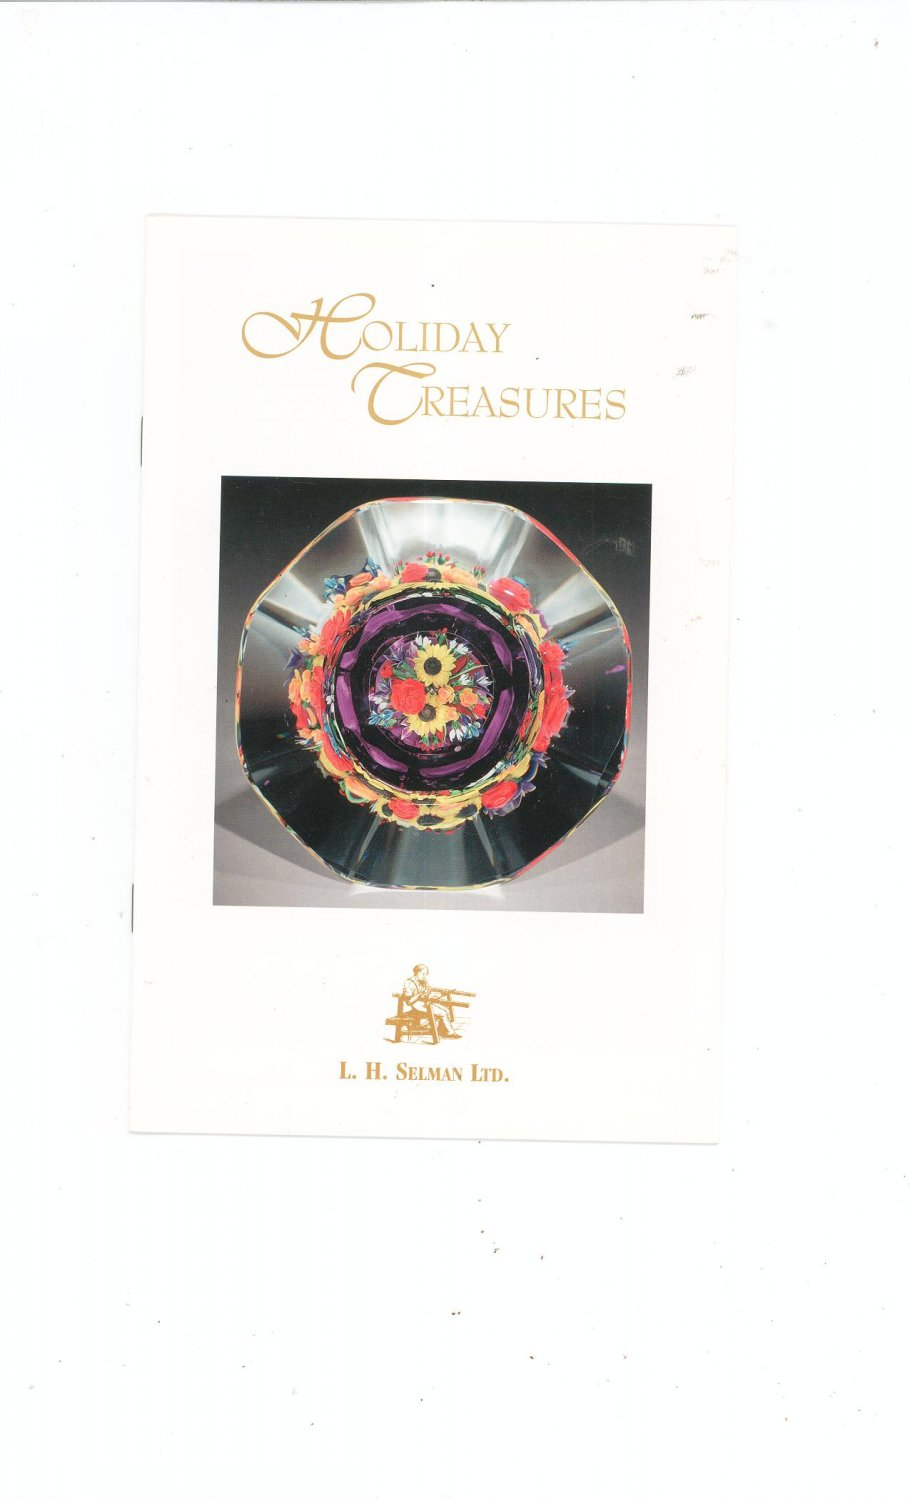 Holiday Treasures Catalog / Brochure by L. H. Selman Ltd. Paperweights Plus